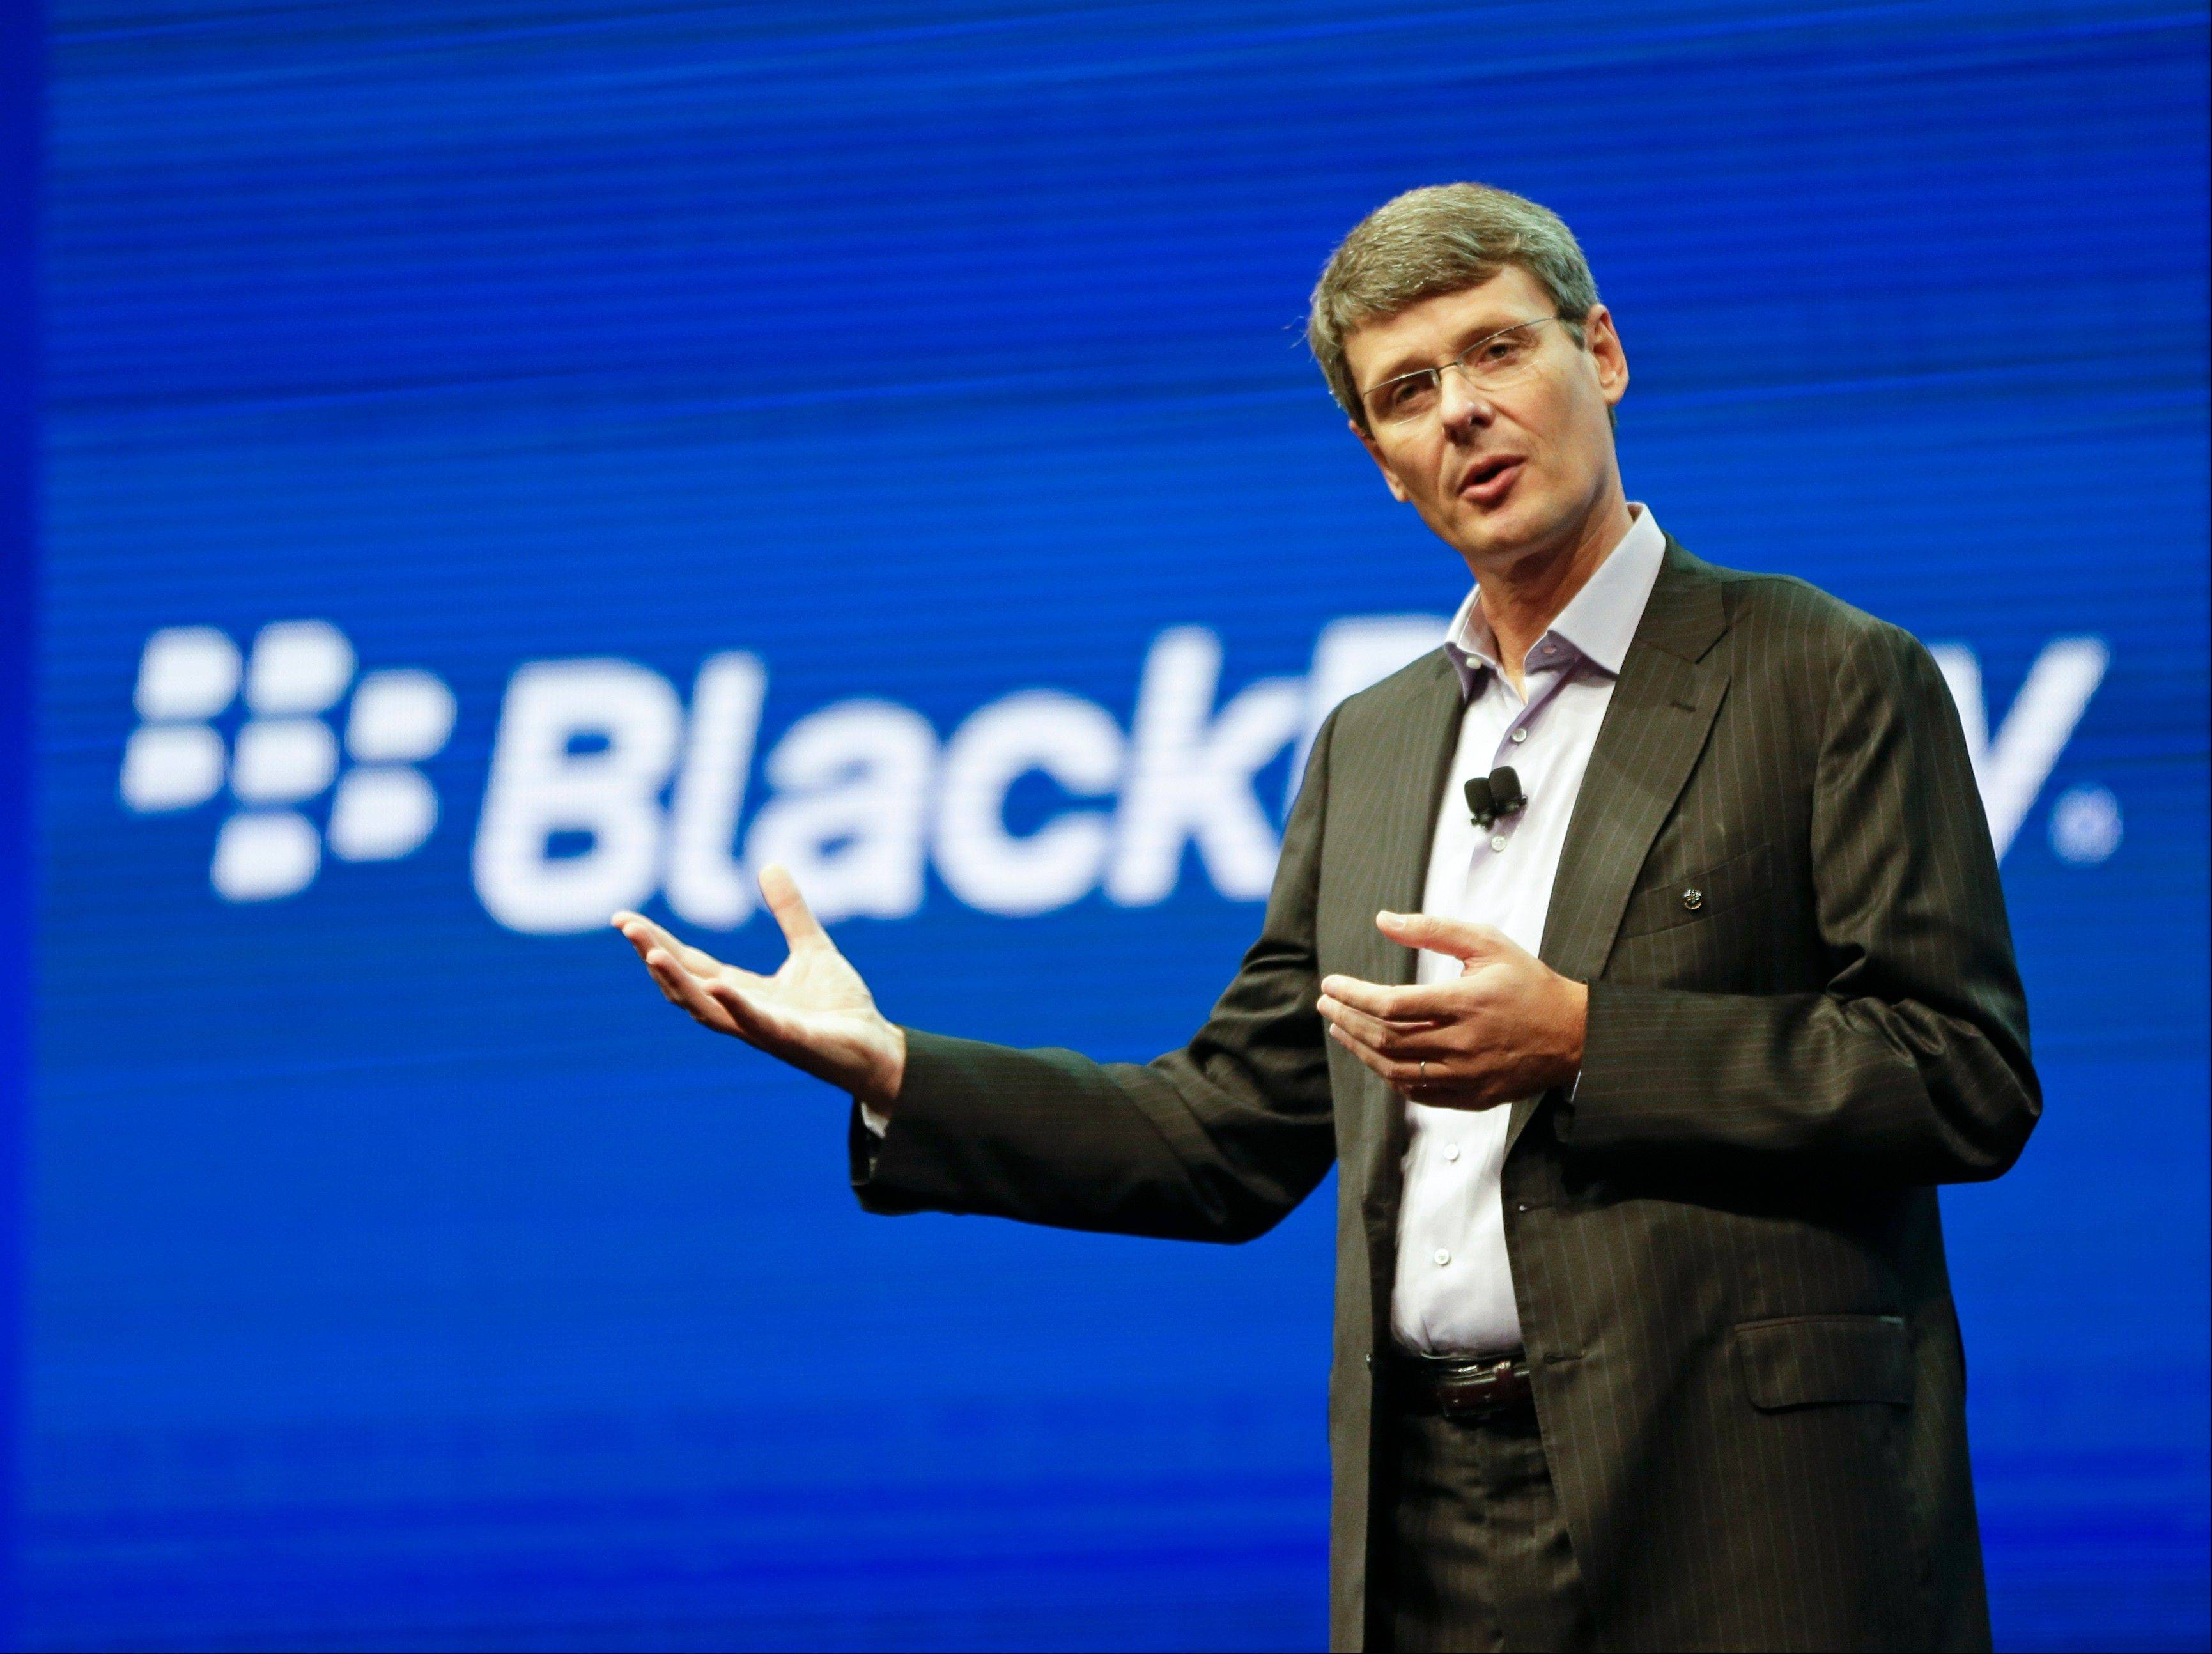 BlackBerry says CEO Thorsten Heins is stepping down. Heins took over in early 2012 after the company lost billions in market value.